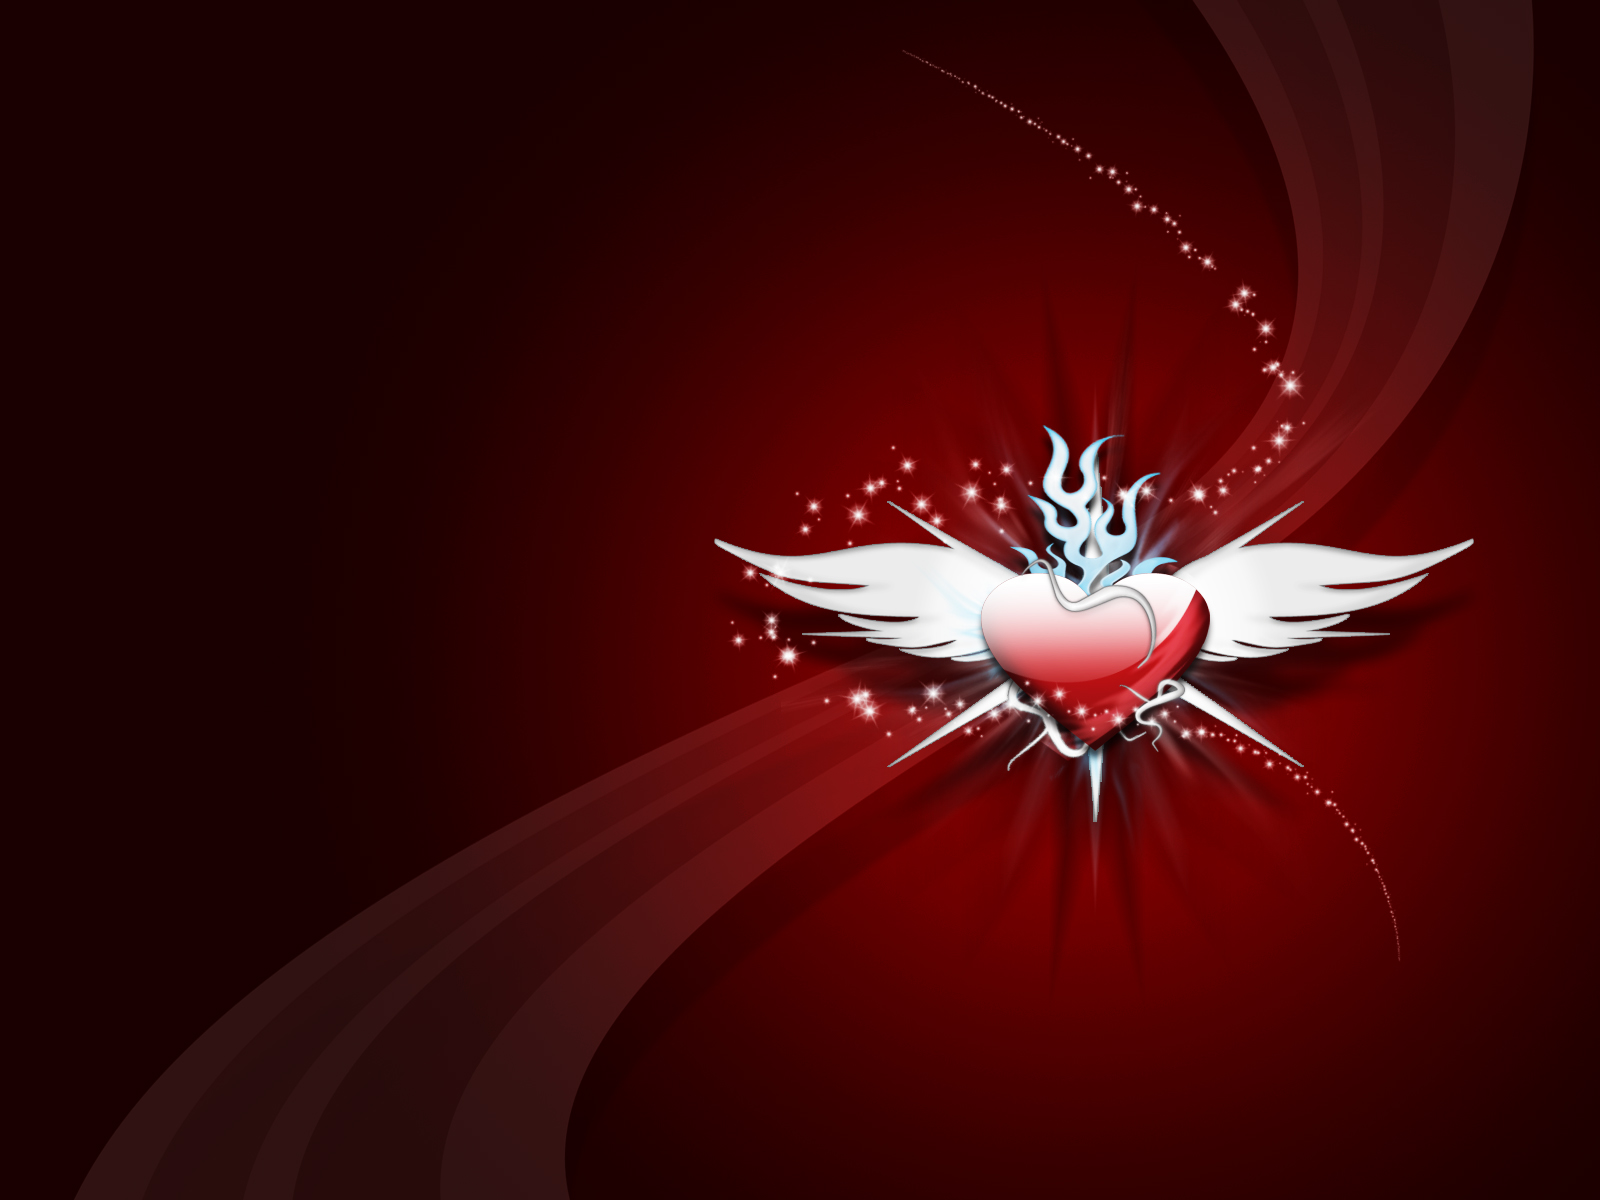 Heart with wings wallpapers Heart with wings stock photos 1600x1200